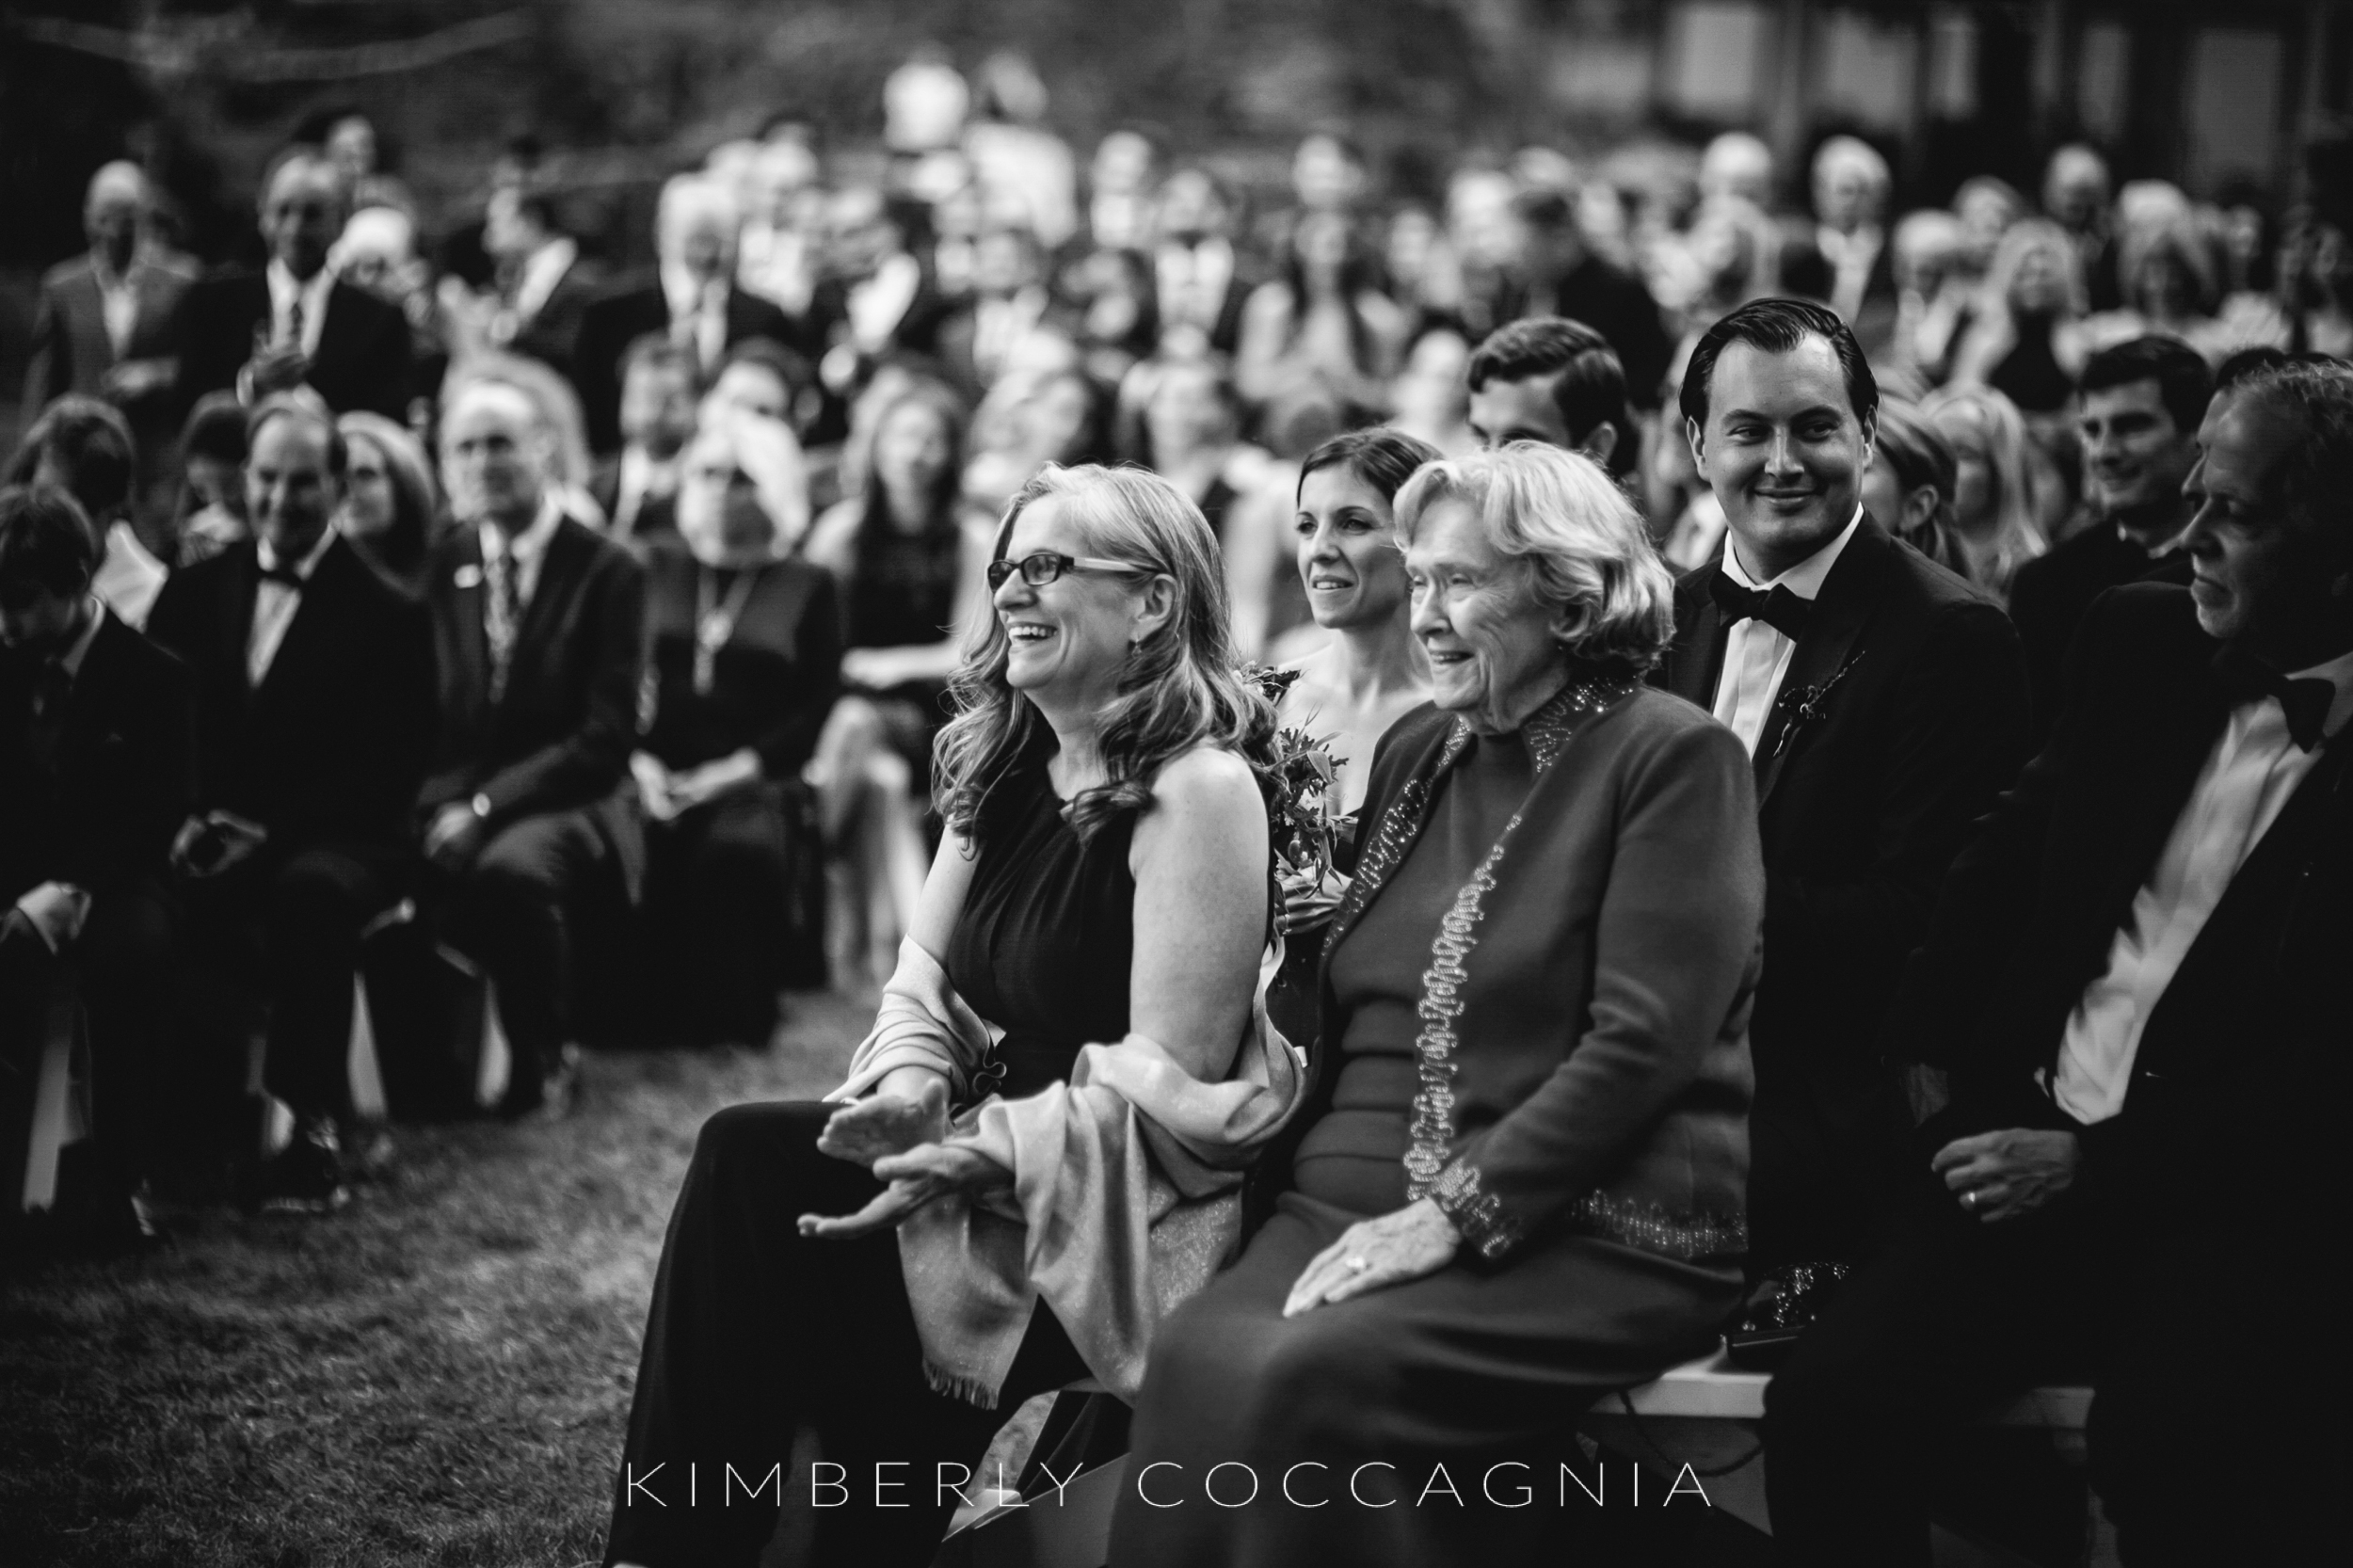 Kimberly+Coccagnia+Hudson+Valley+Wedding+Photographer-63.JPG